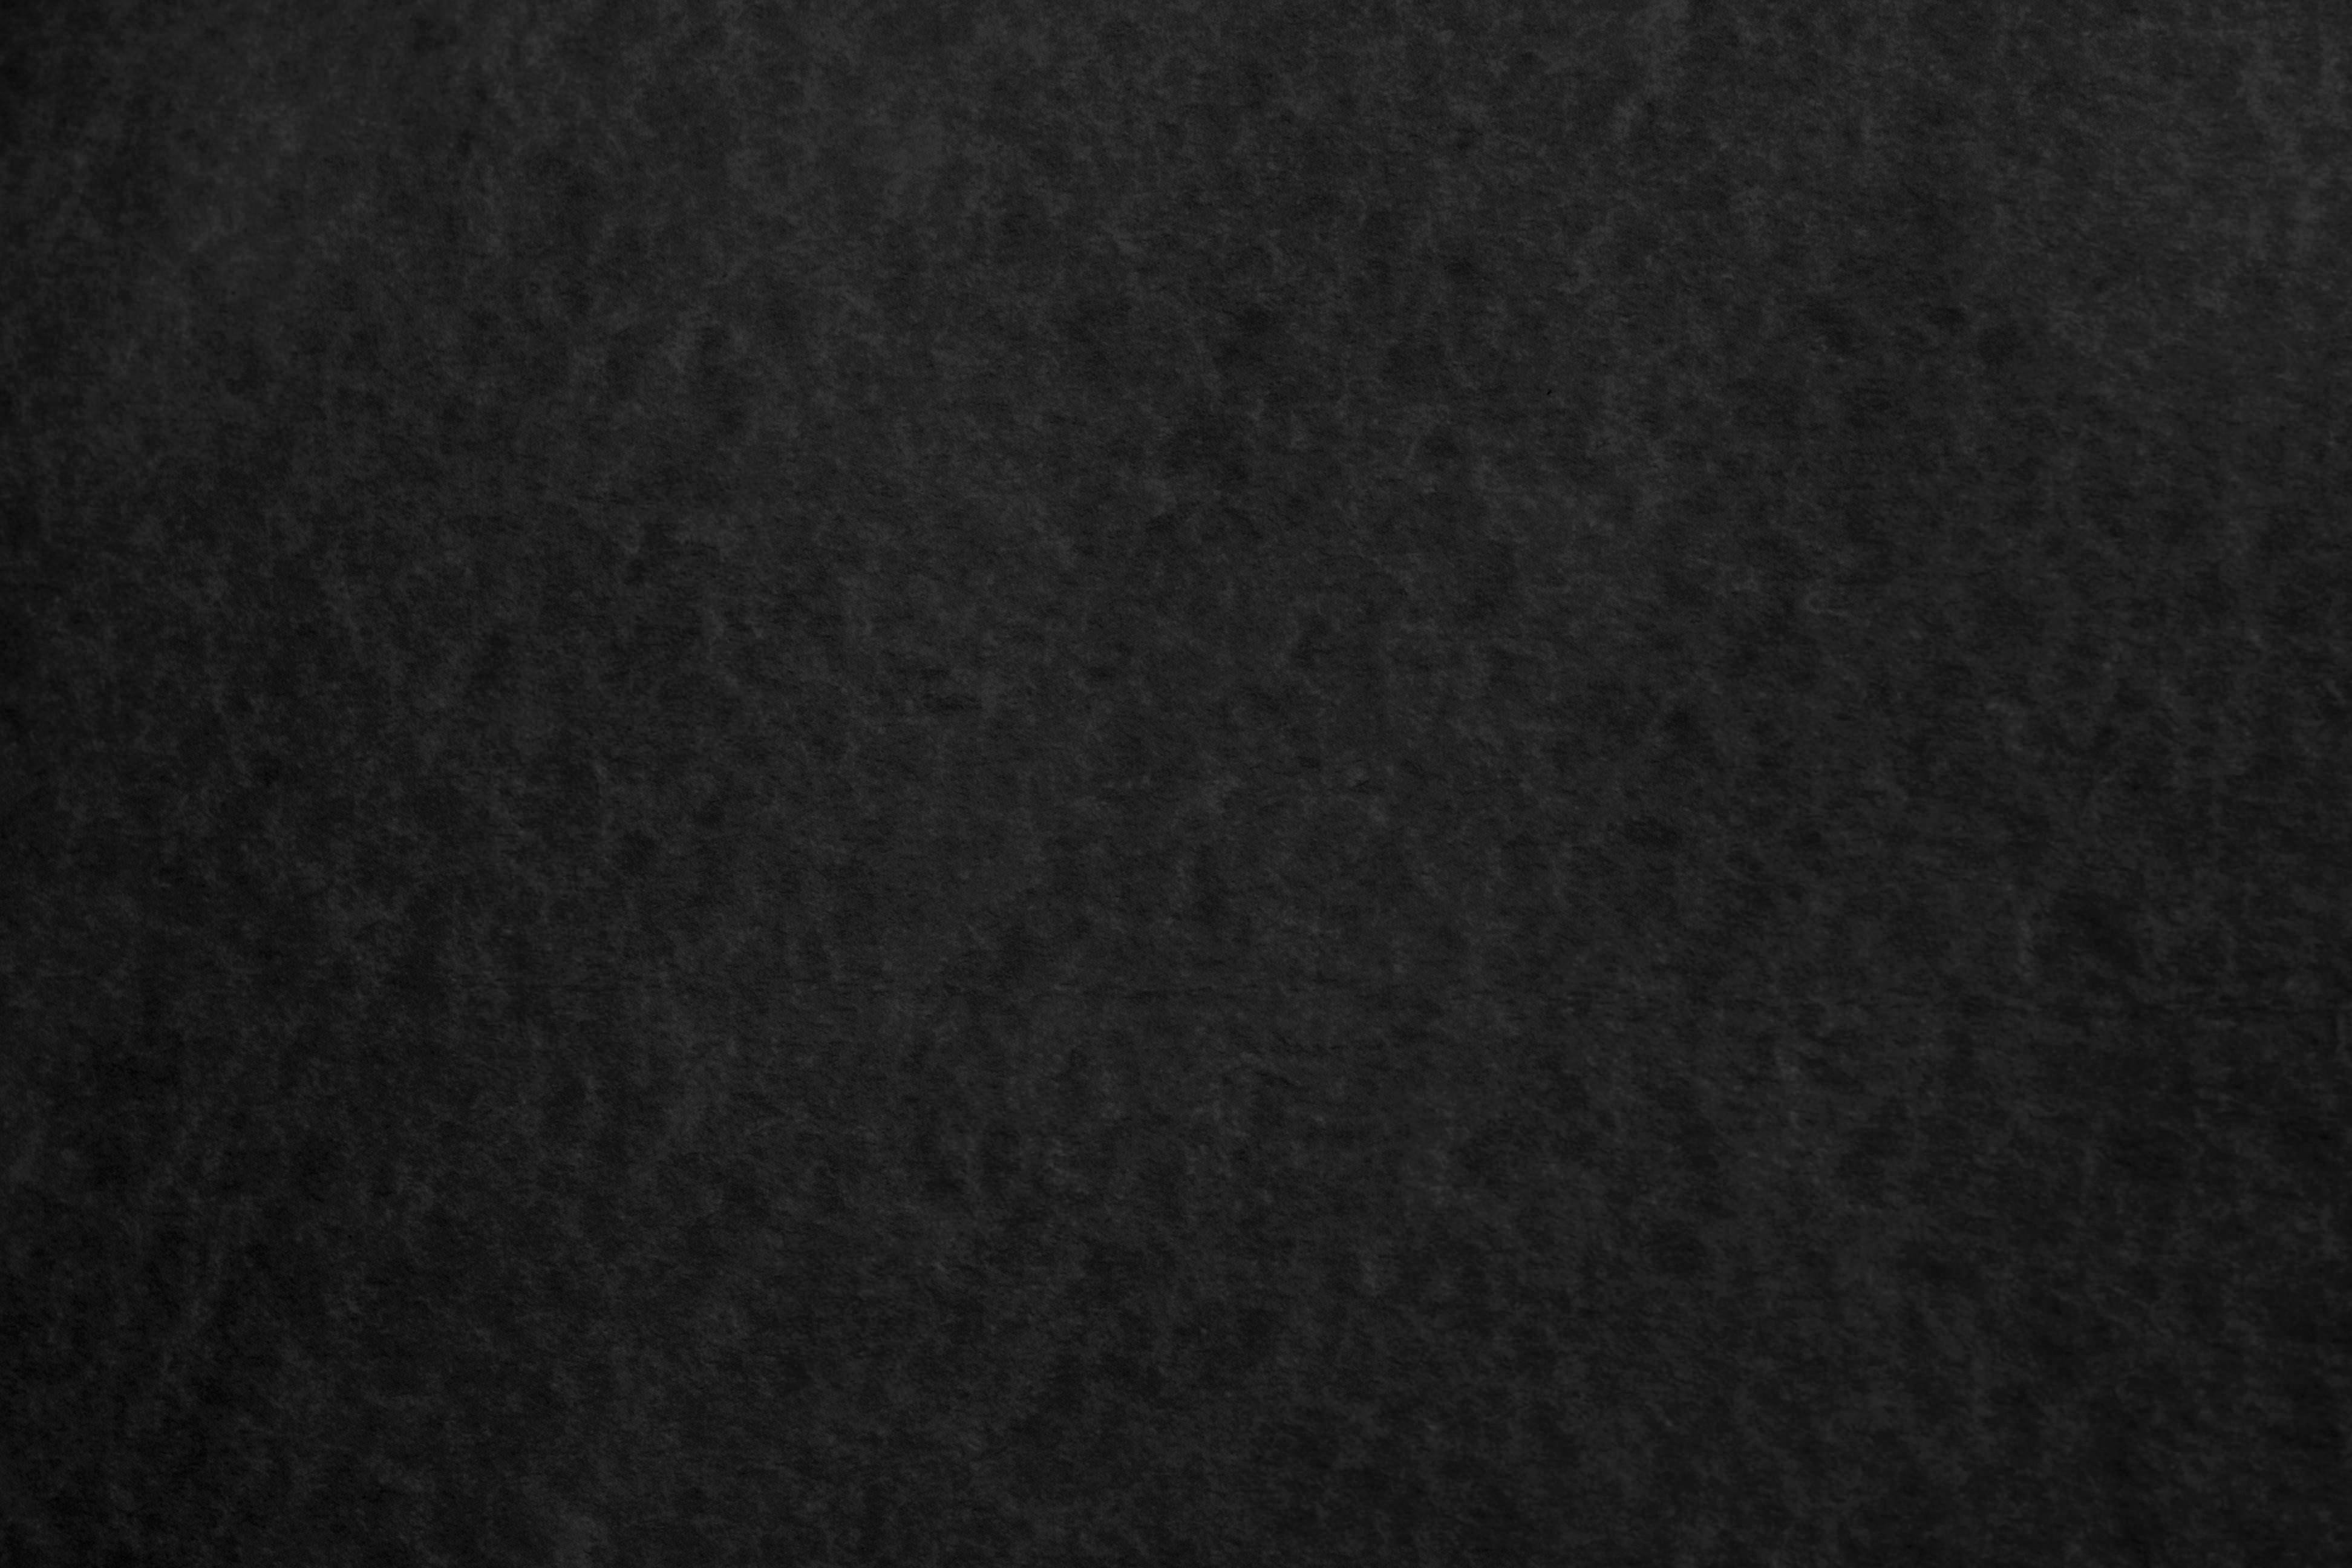 3888x2592 Black paper | 136 Wallpapers